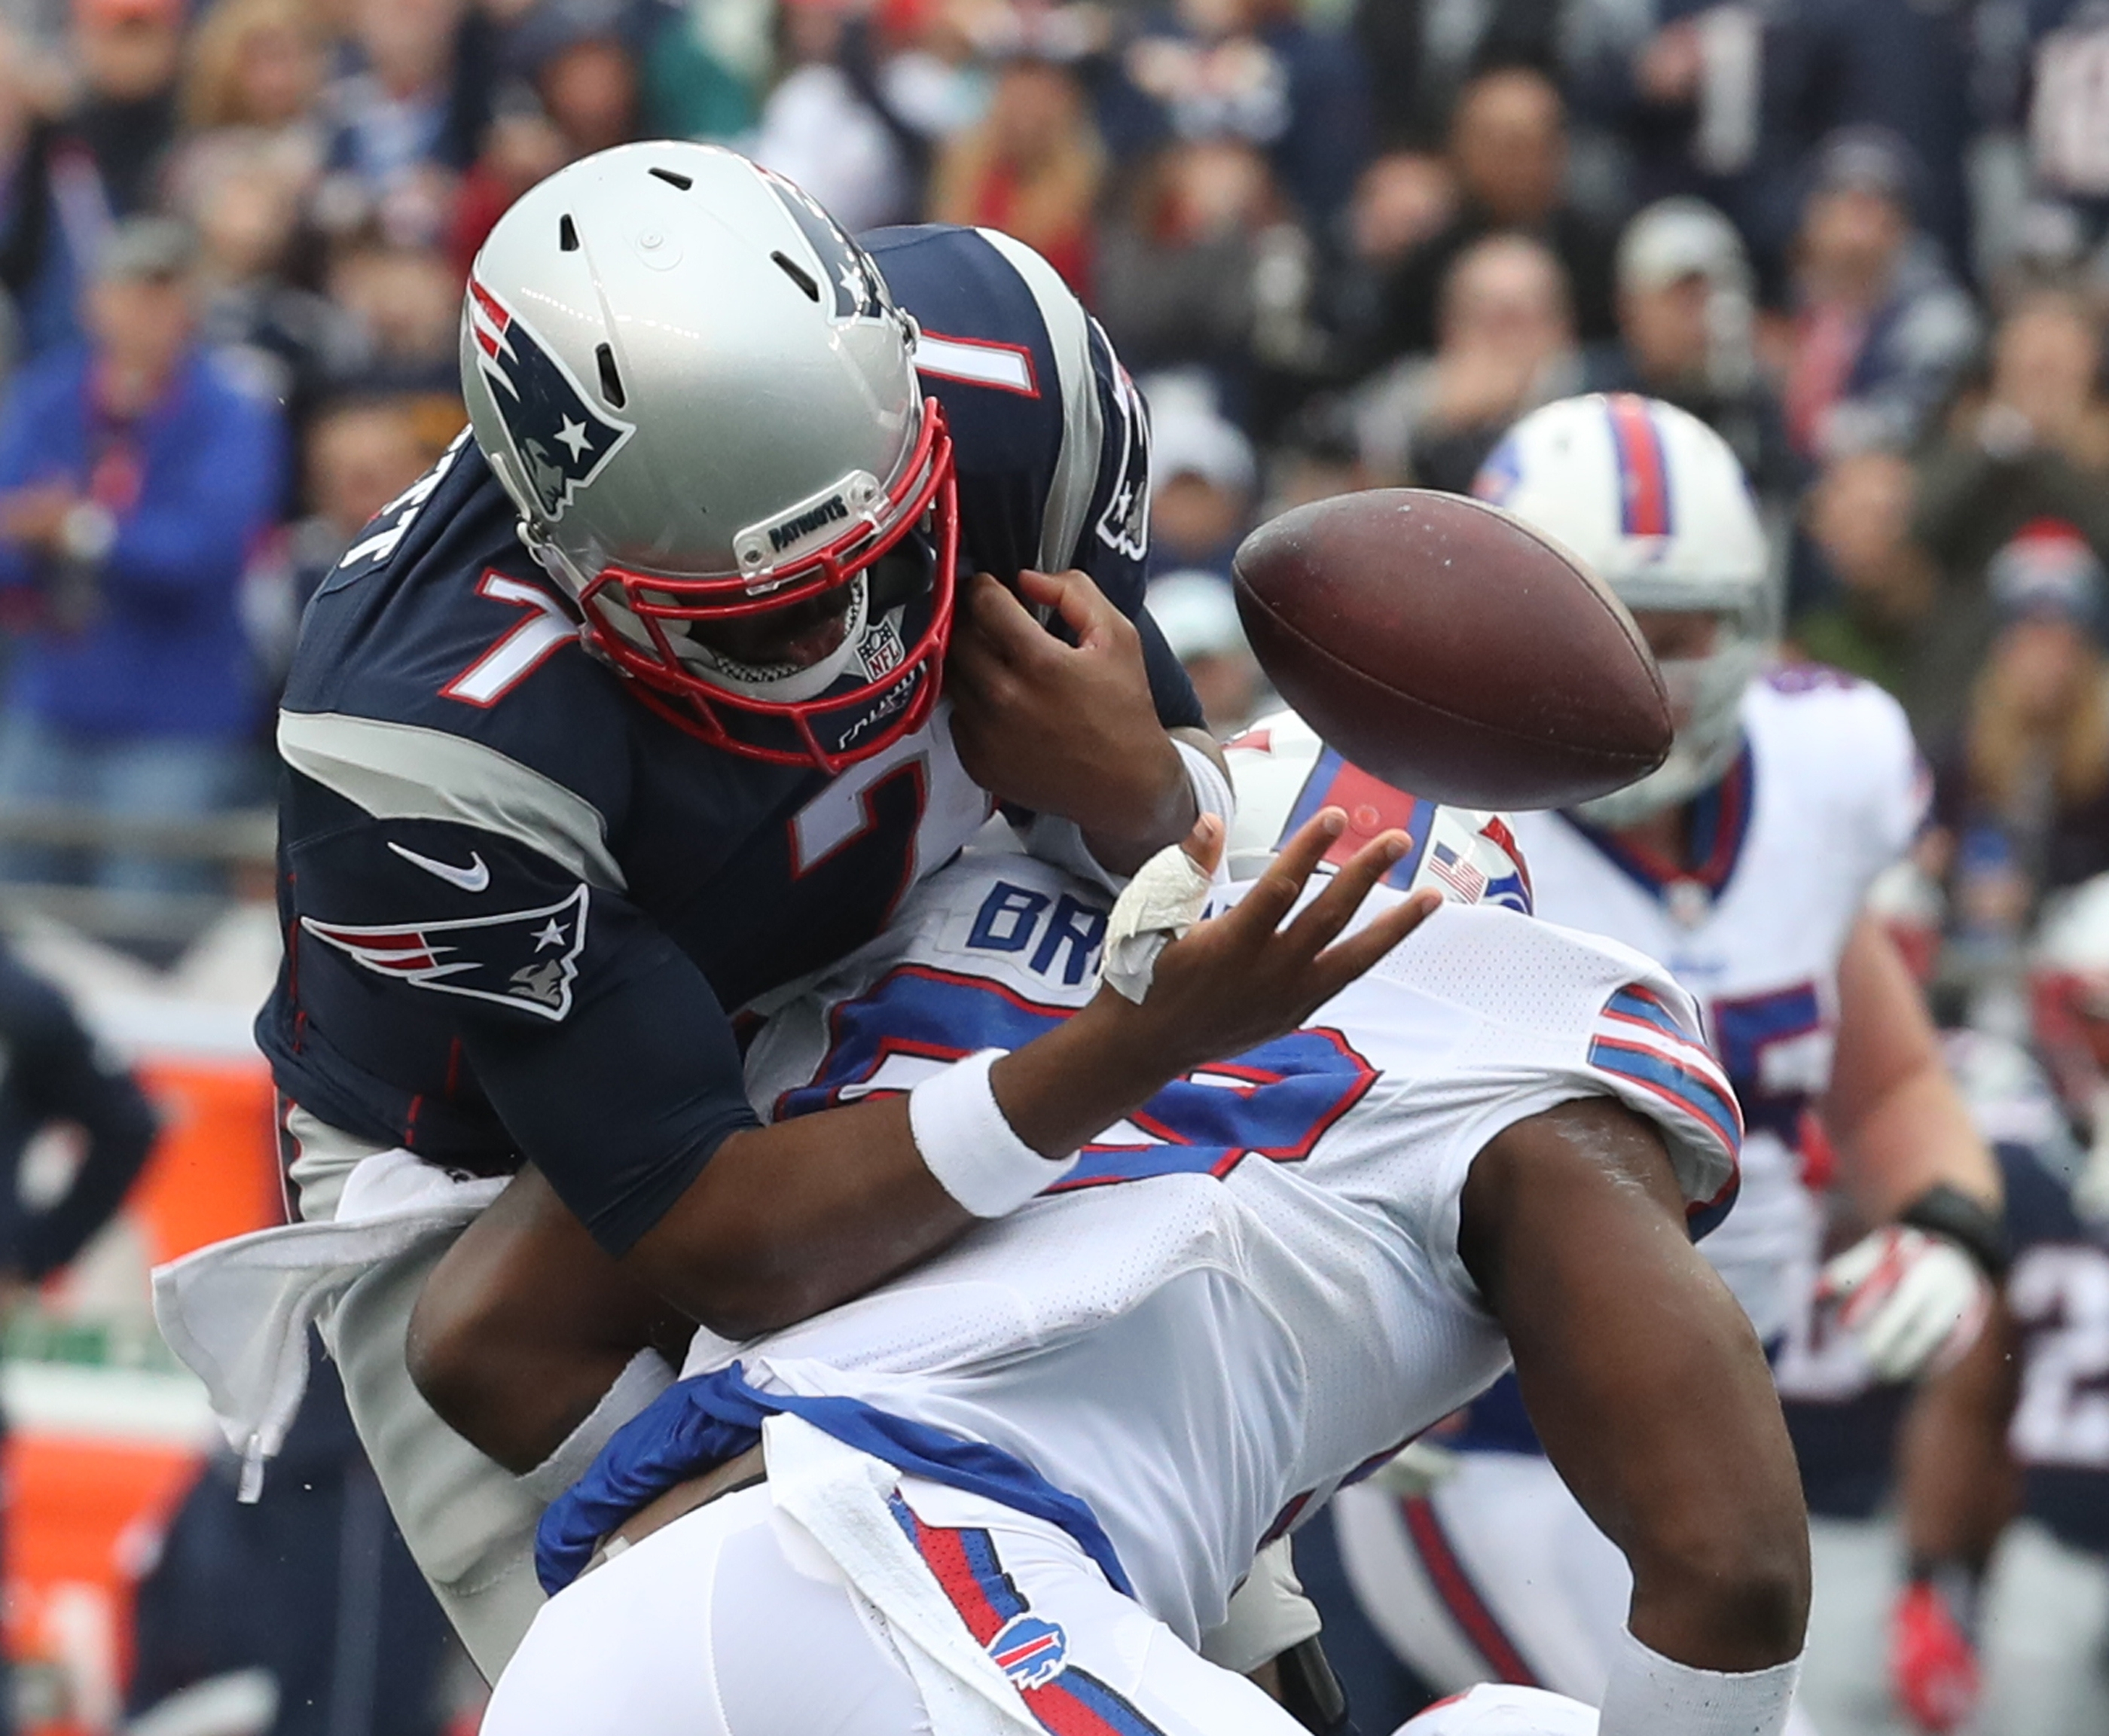 Buffalo Bills inside linebacker Zach Brown forces a fumble by New England Patriots quarterback Jacoby Brissett (7) in the second quarter.